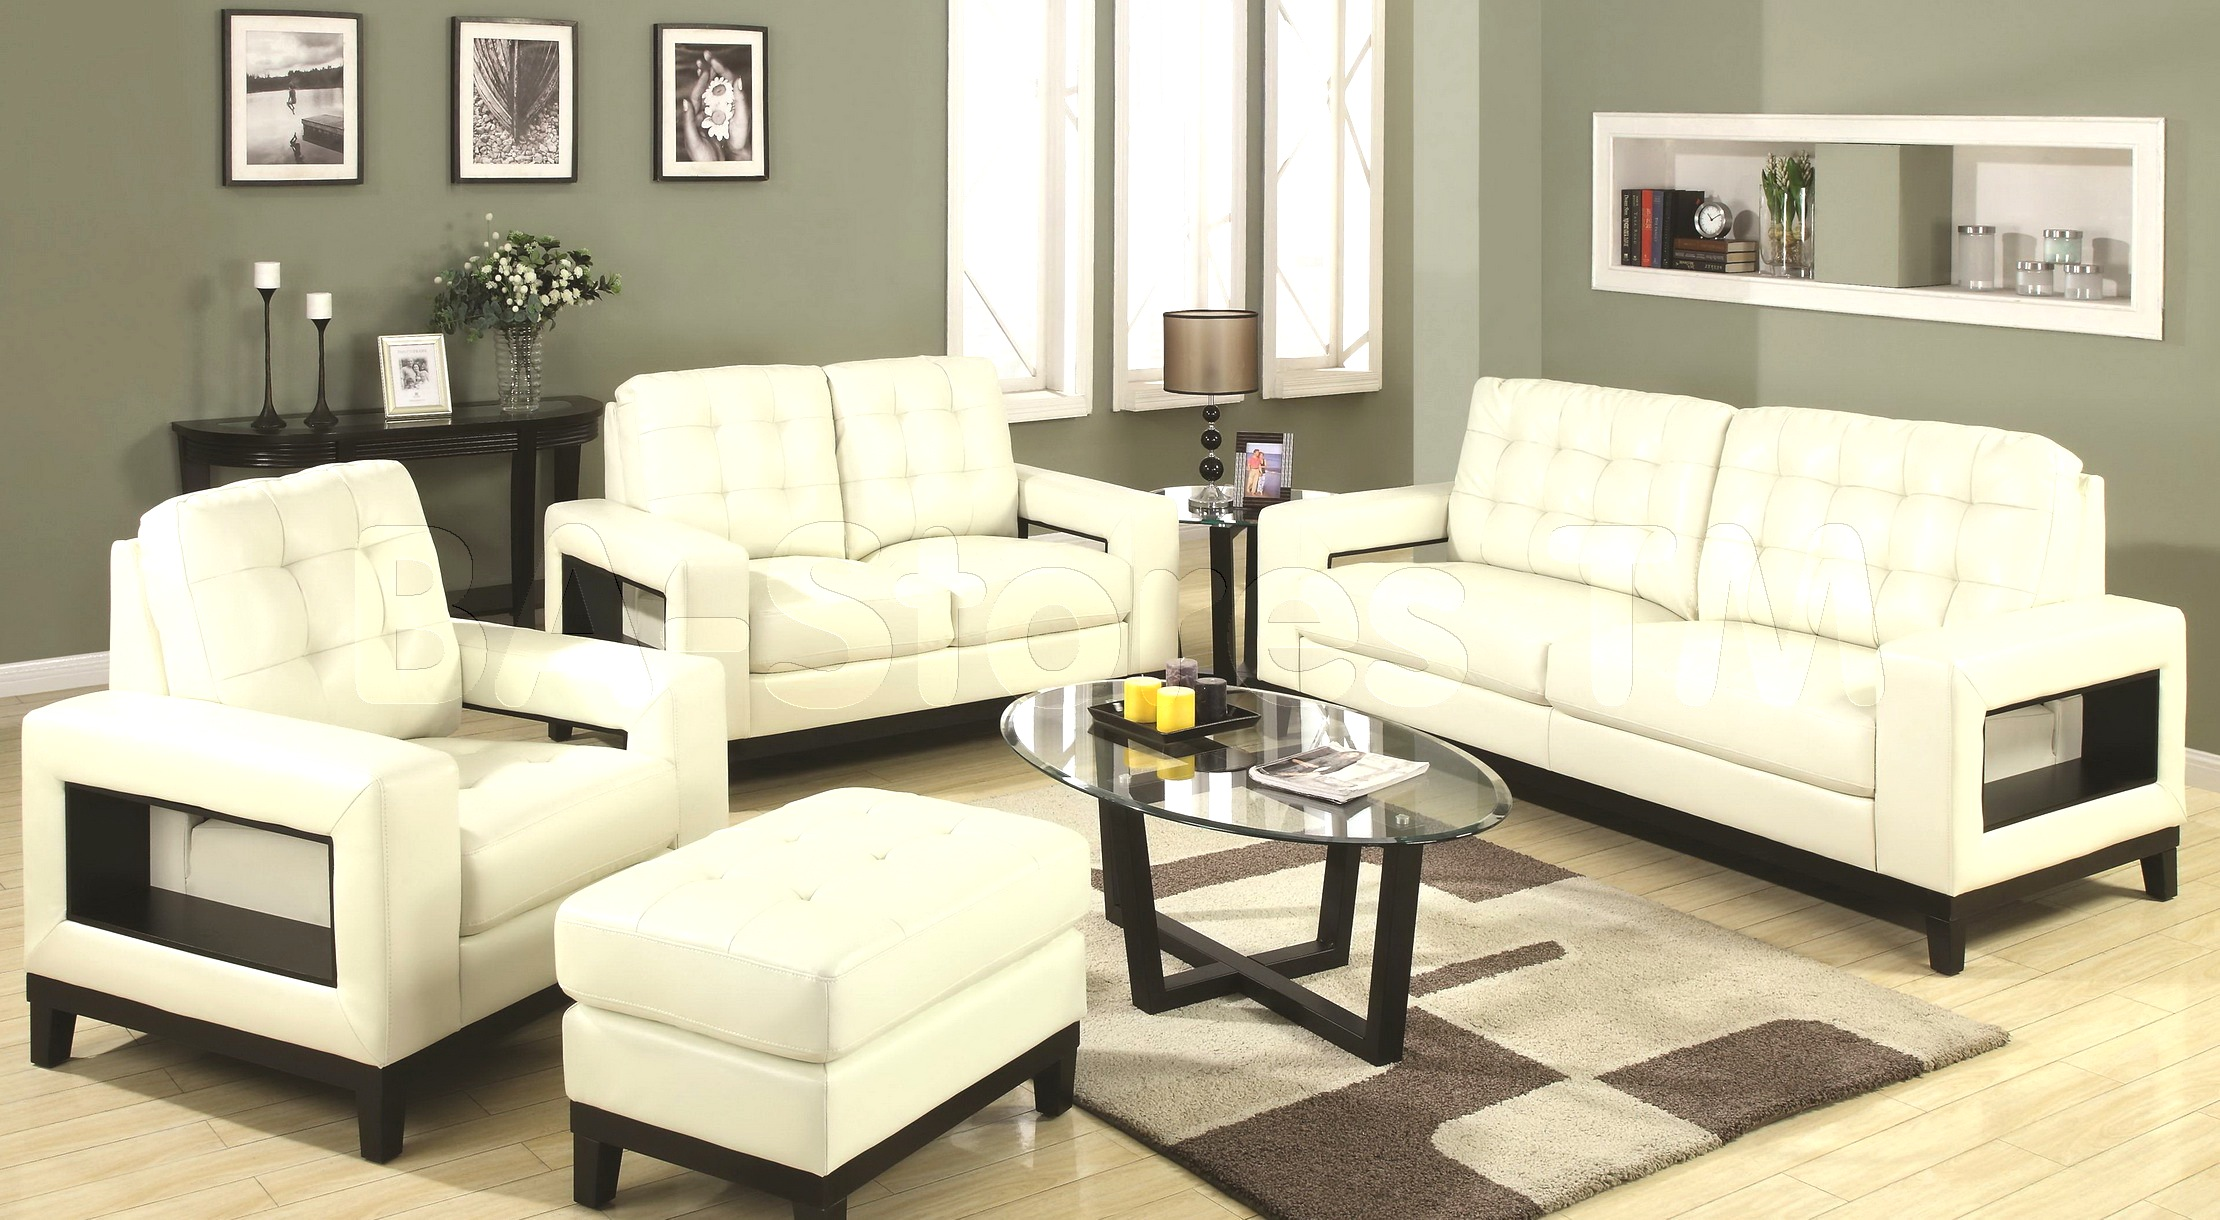 White living room furniture sets roselawnlutheran Living room furniture images